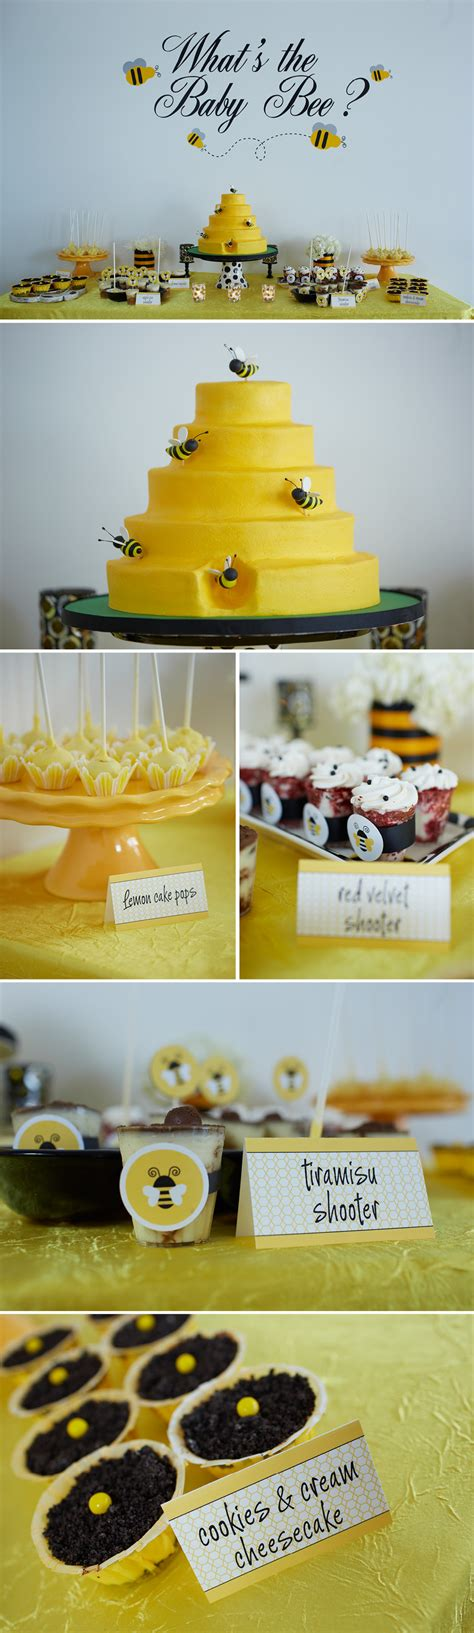 baby shower bee theme bumble bee themed gender reveal party the celebration